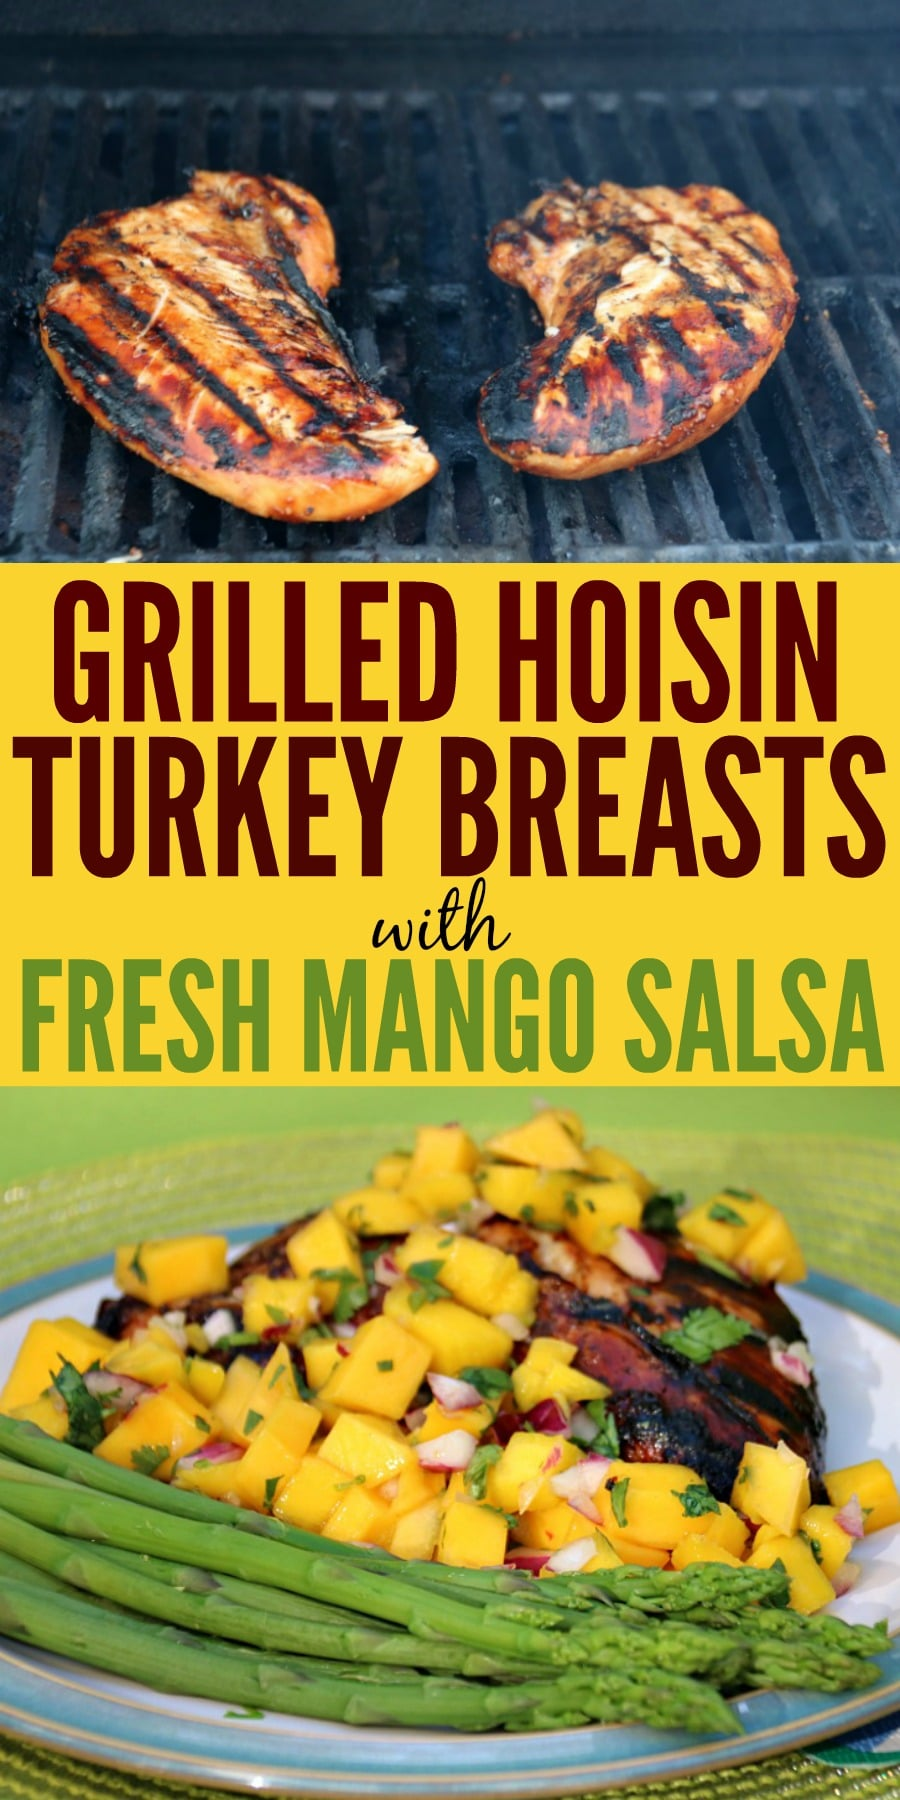 Grilled Turkey Breasts with Mango Salsa